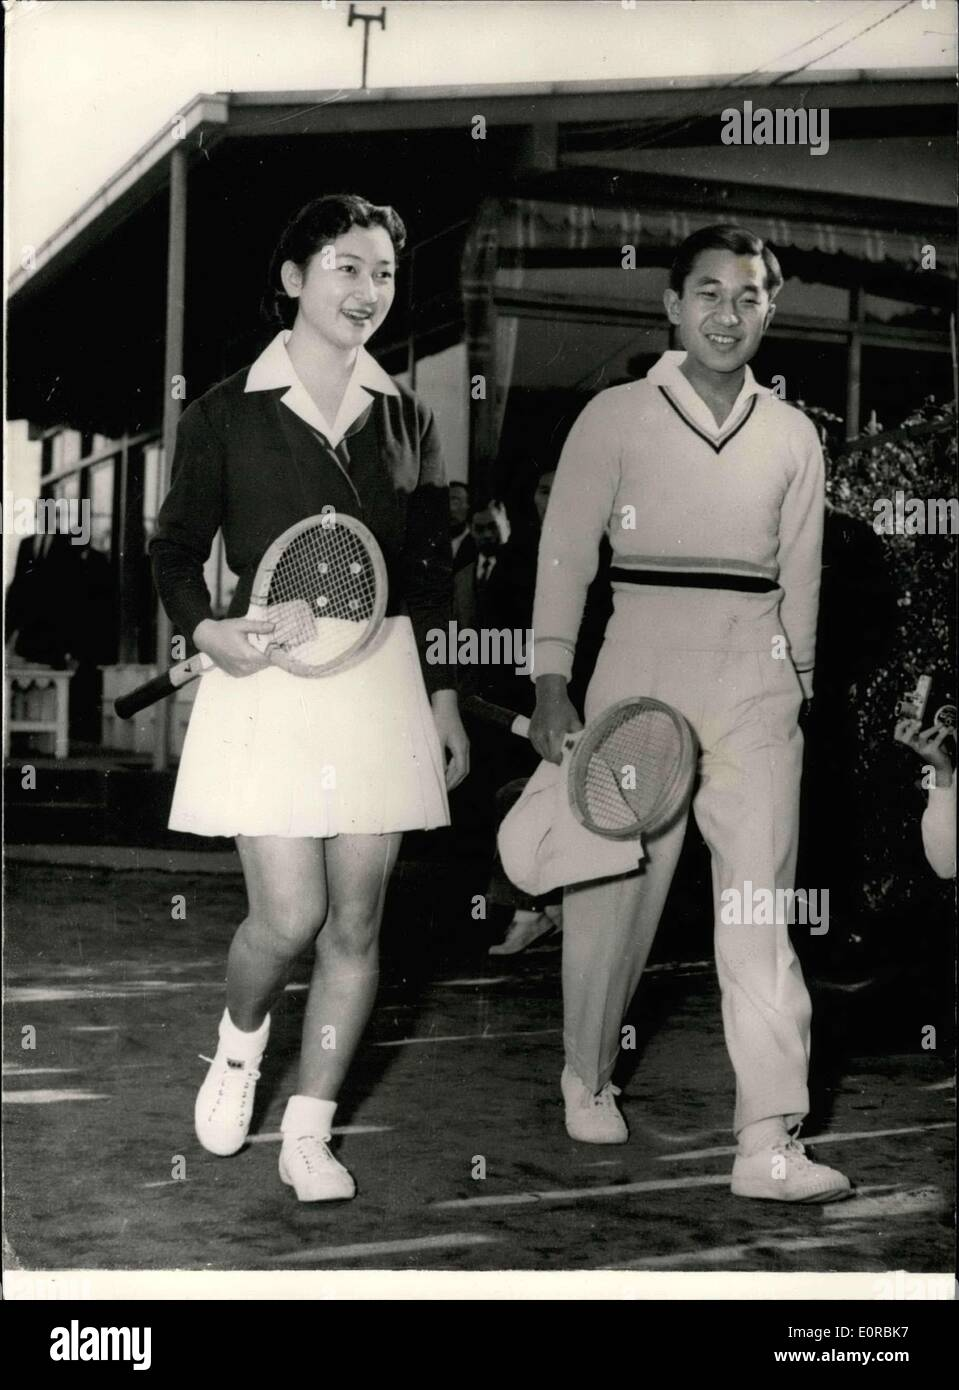 Dec. 09, 1958 - Crown Prince Akihito and Fiancee play tennis: Crown Prince Akihito of Japan and his fiancee, Miss Michiko Shoda, partnered each other at tennis over the week-end at the Tokyo Lawn Tennis Club in Azabu, Tokyo. This was the first time they have been photographed together since the announcement of their engagement. Photo shows Crown Prince Akihito and his fiancee, Miss Michiko Shoda, seen on their way to the courts for their tennis game at Azabu, Tokyo. - Stock Image